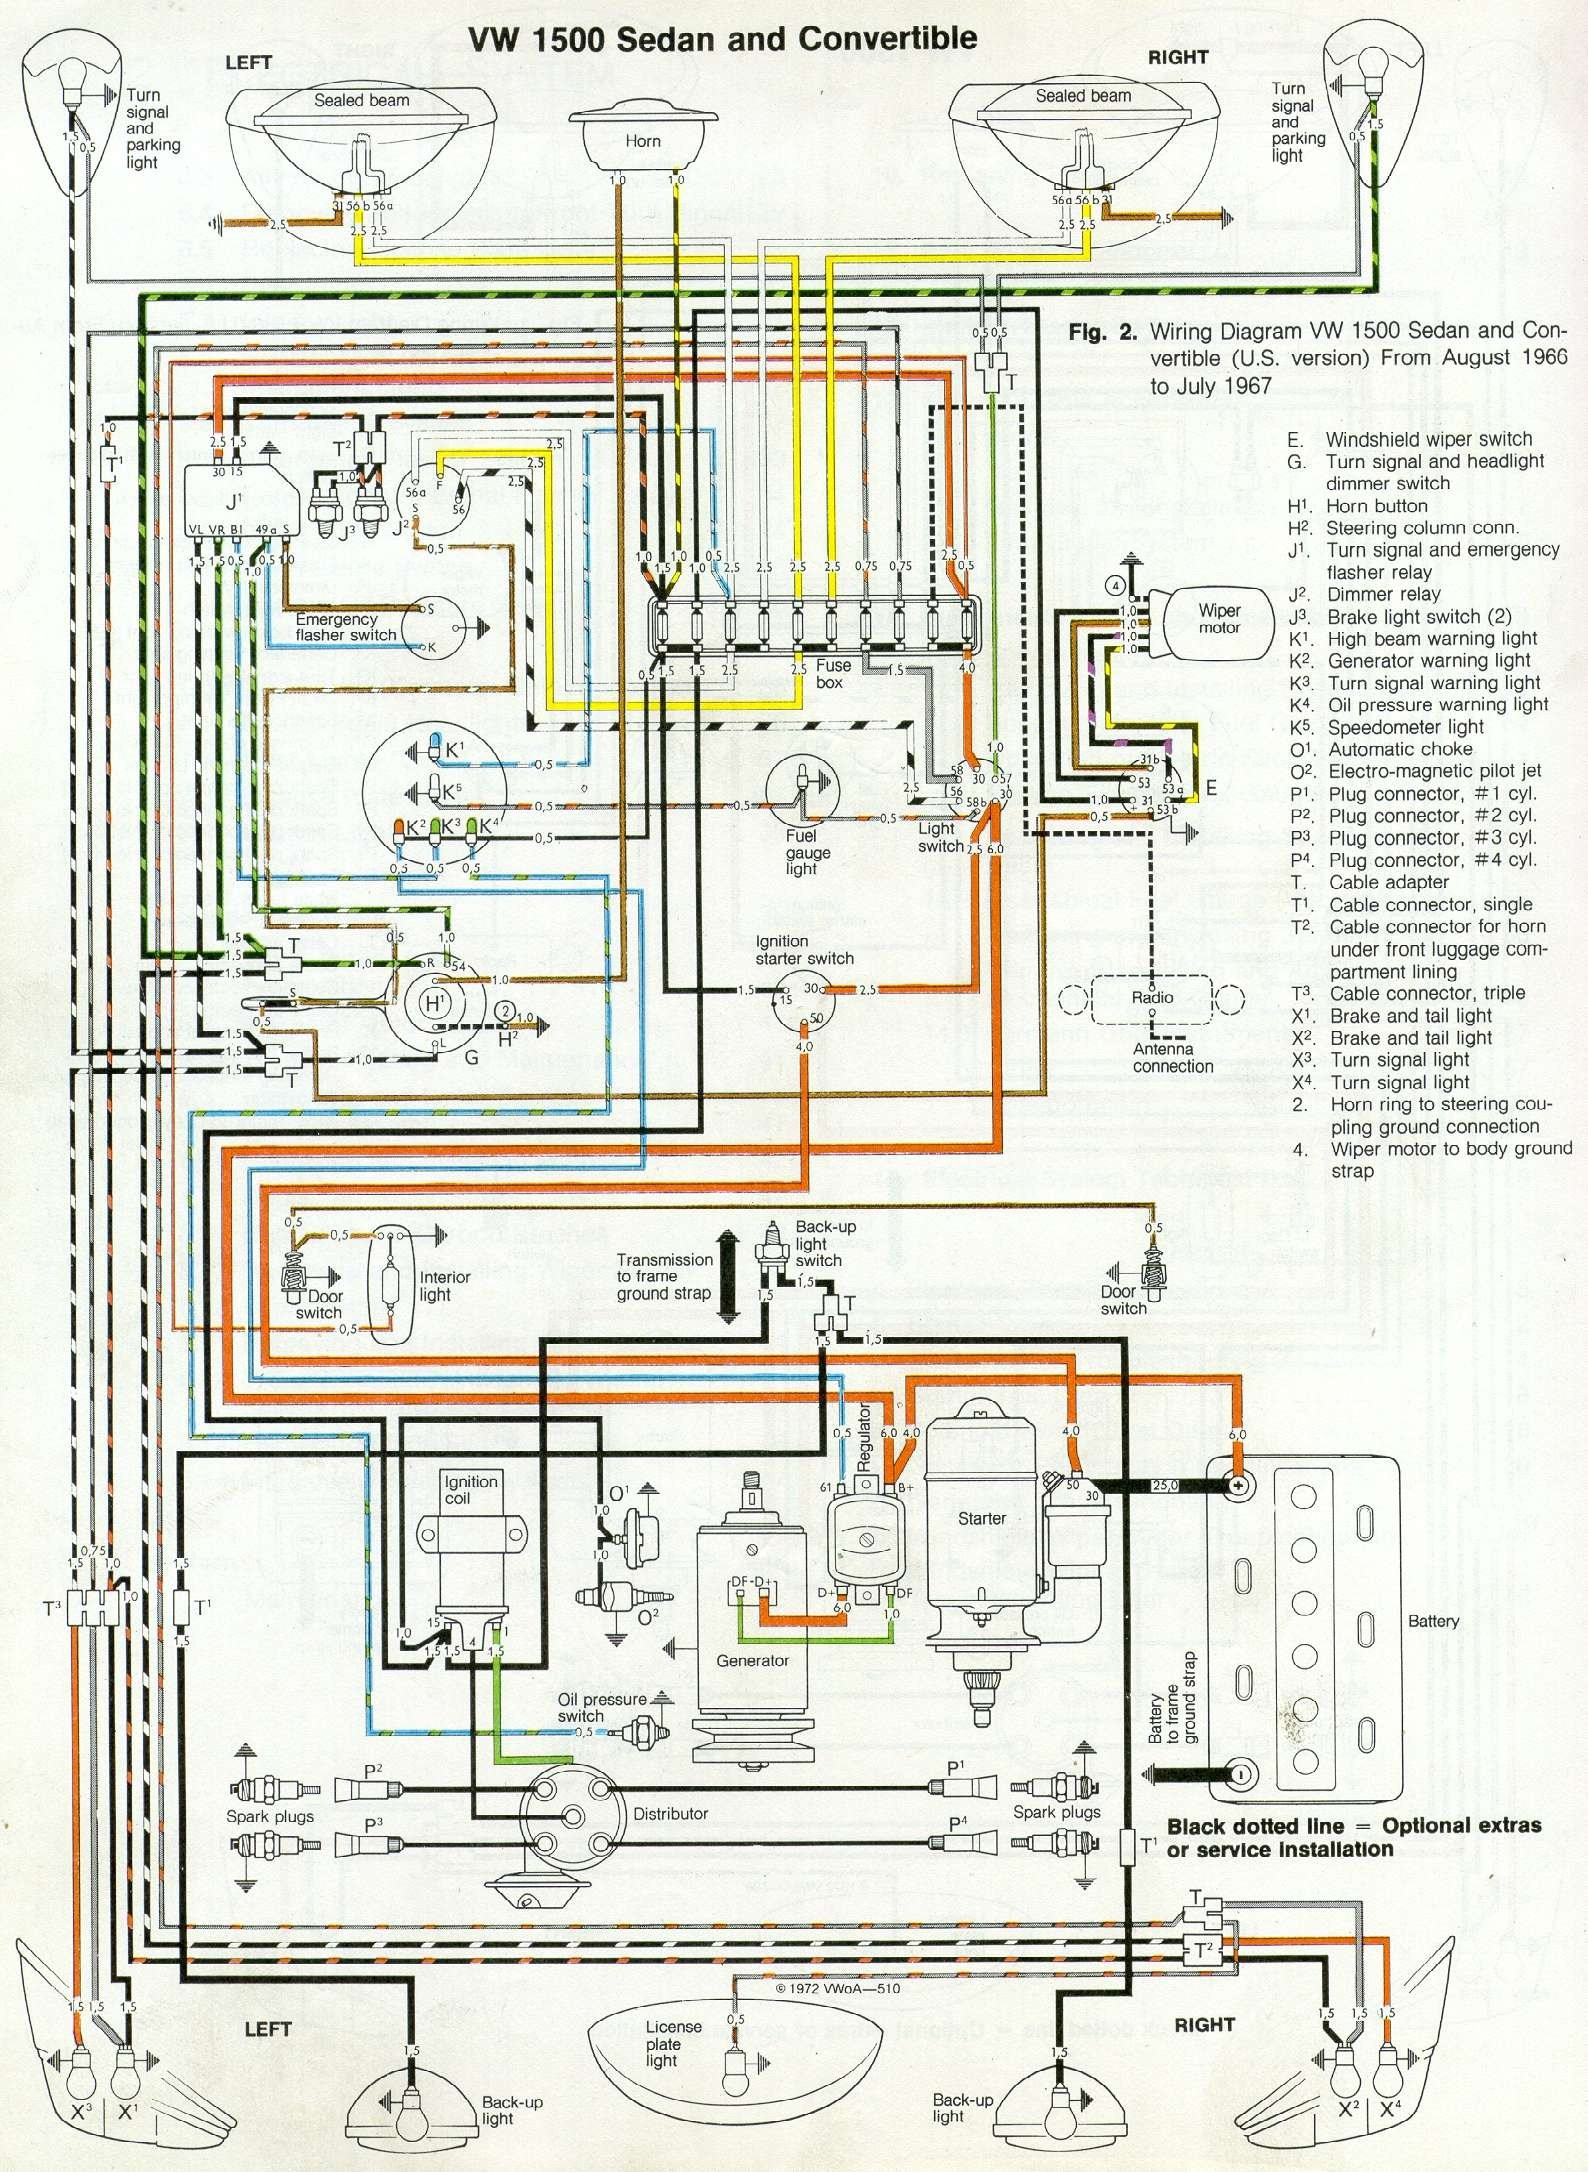 1967 vw beetle wiring diagram wiring diagram blog rh 2 fuerstliche weine de Type 1 VW Engine Diagram 1970 vw beetle engine wiring diagram